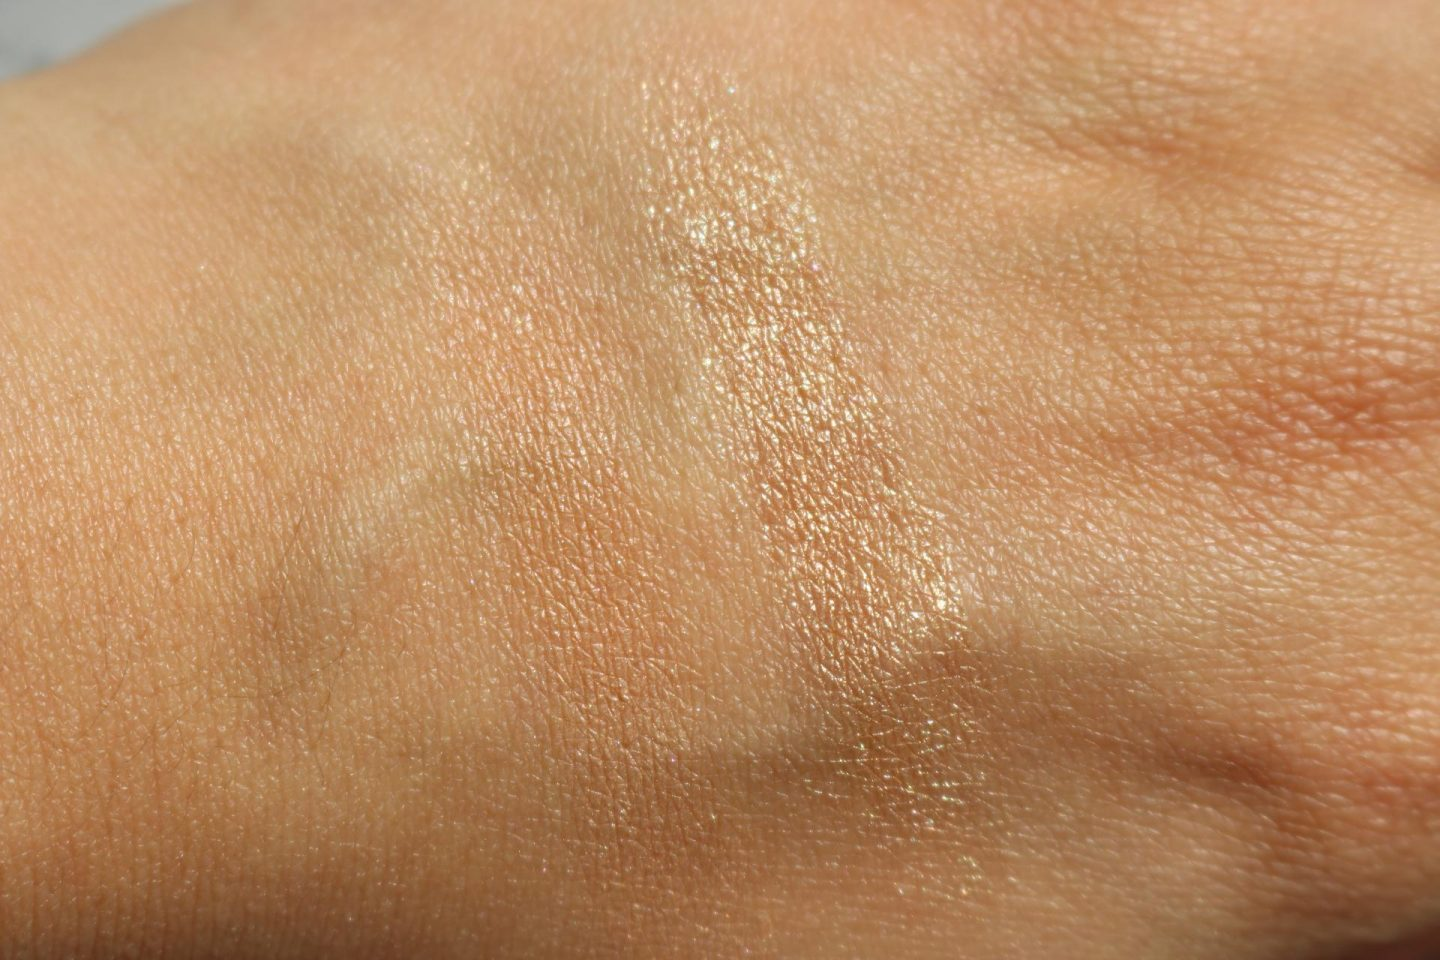 Givenchy Solar Pulse Healthy Glow Marbled Powder swatches